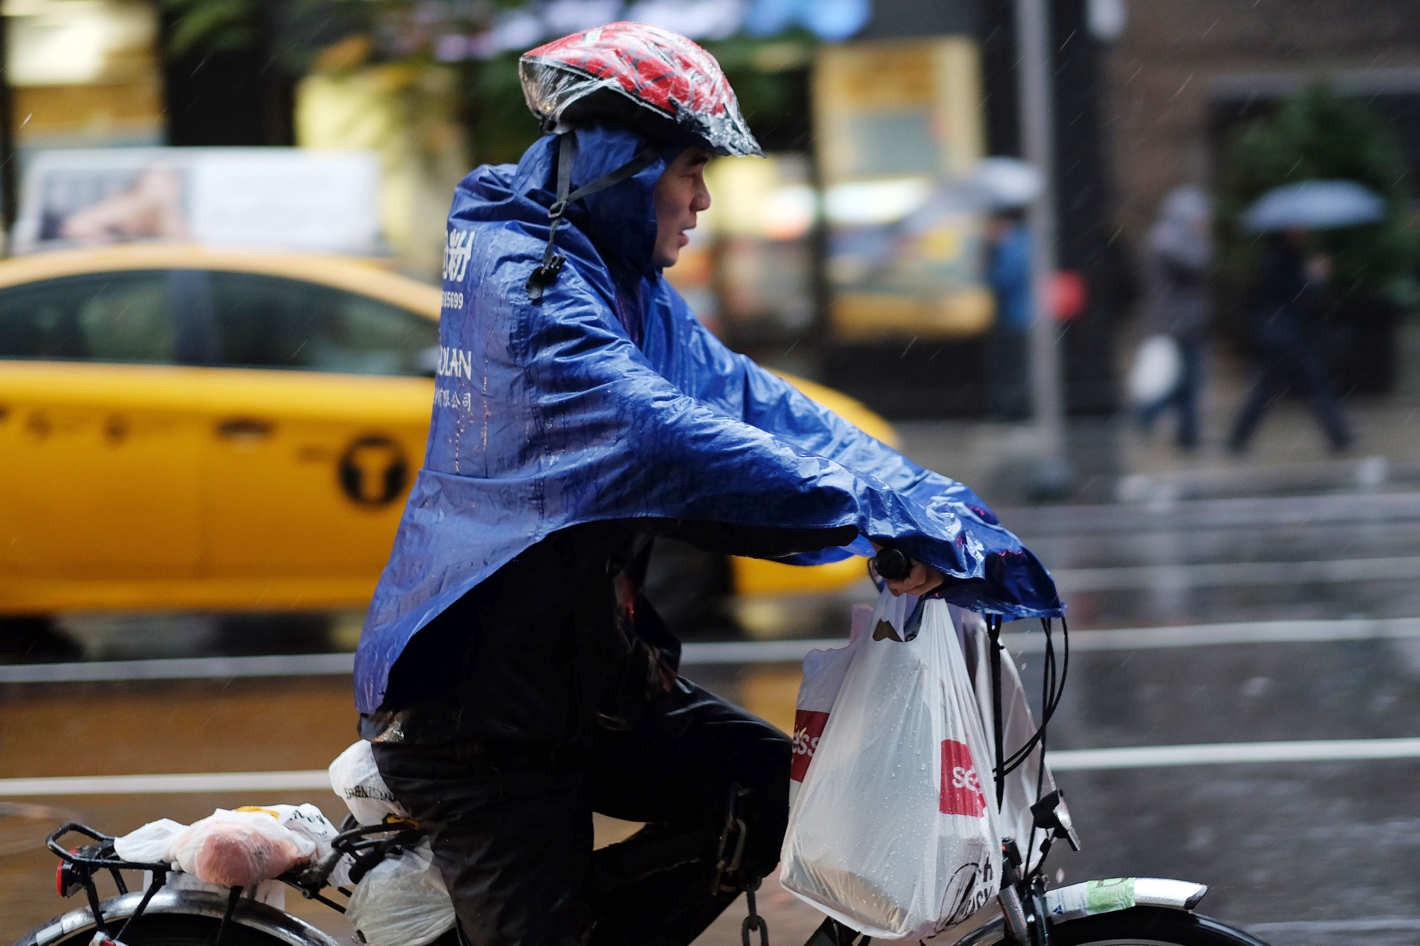 Source:  http://www.grubstreet.com/2016/10/nyc-food-delivery-couriers-demand-better-working-conditions.html